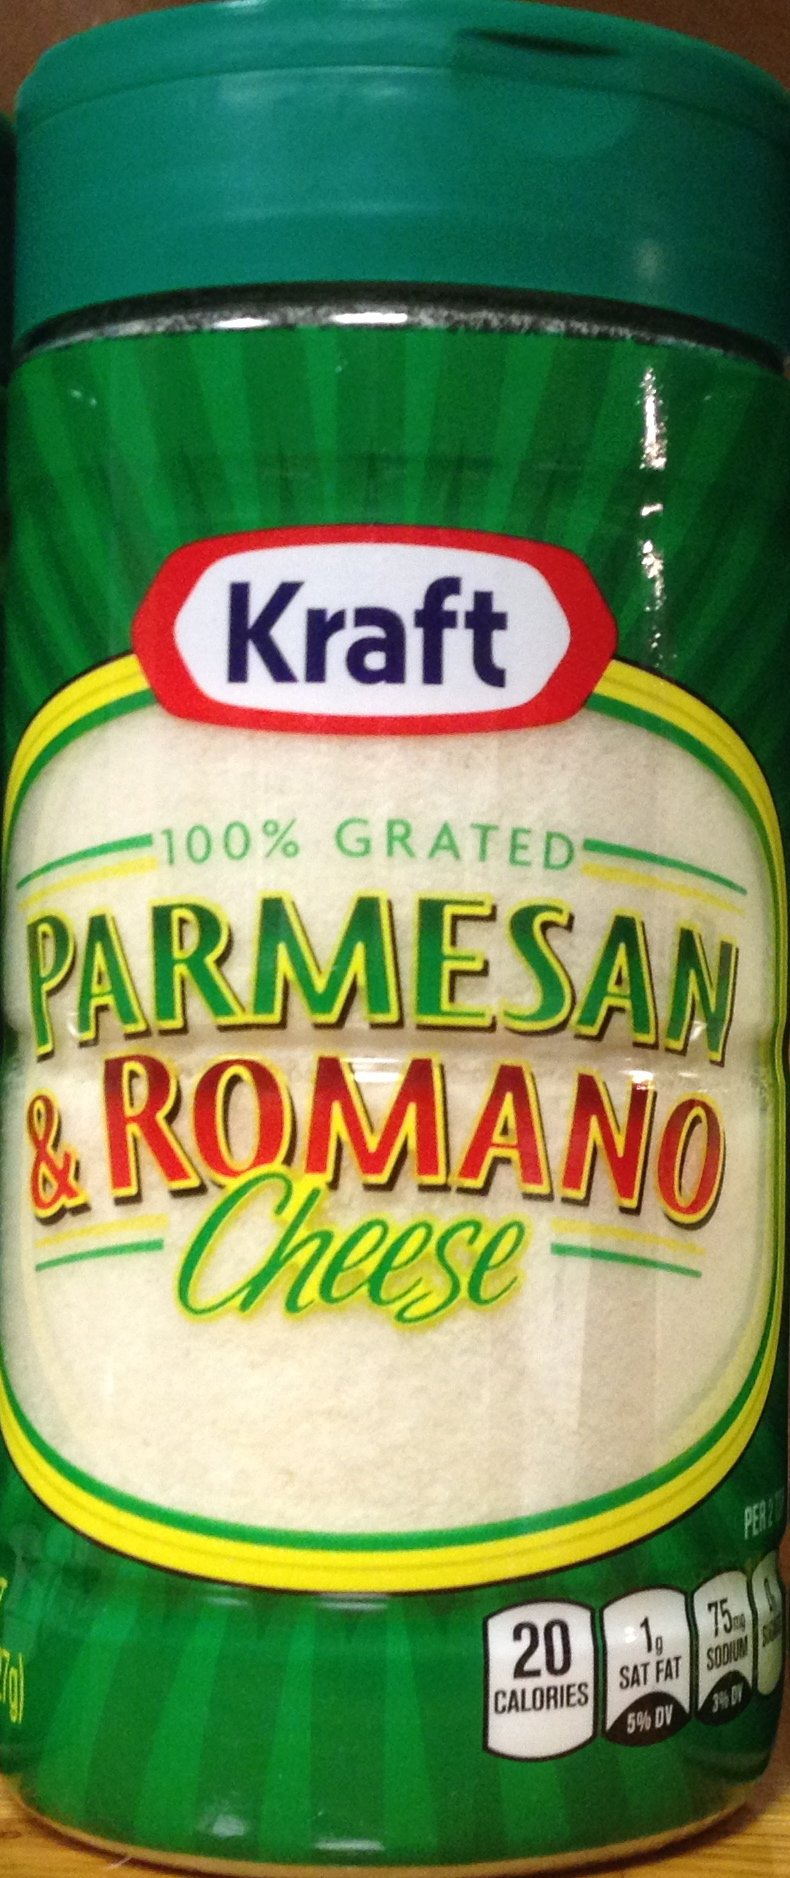 Kraft 100% Grated PARMESAN & ROMANO Cheese 8oz. (5 Pack)